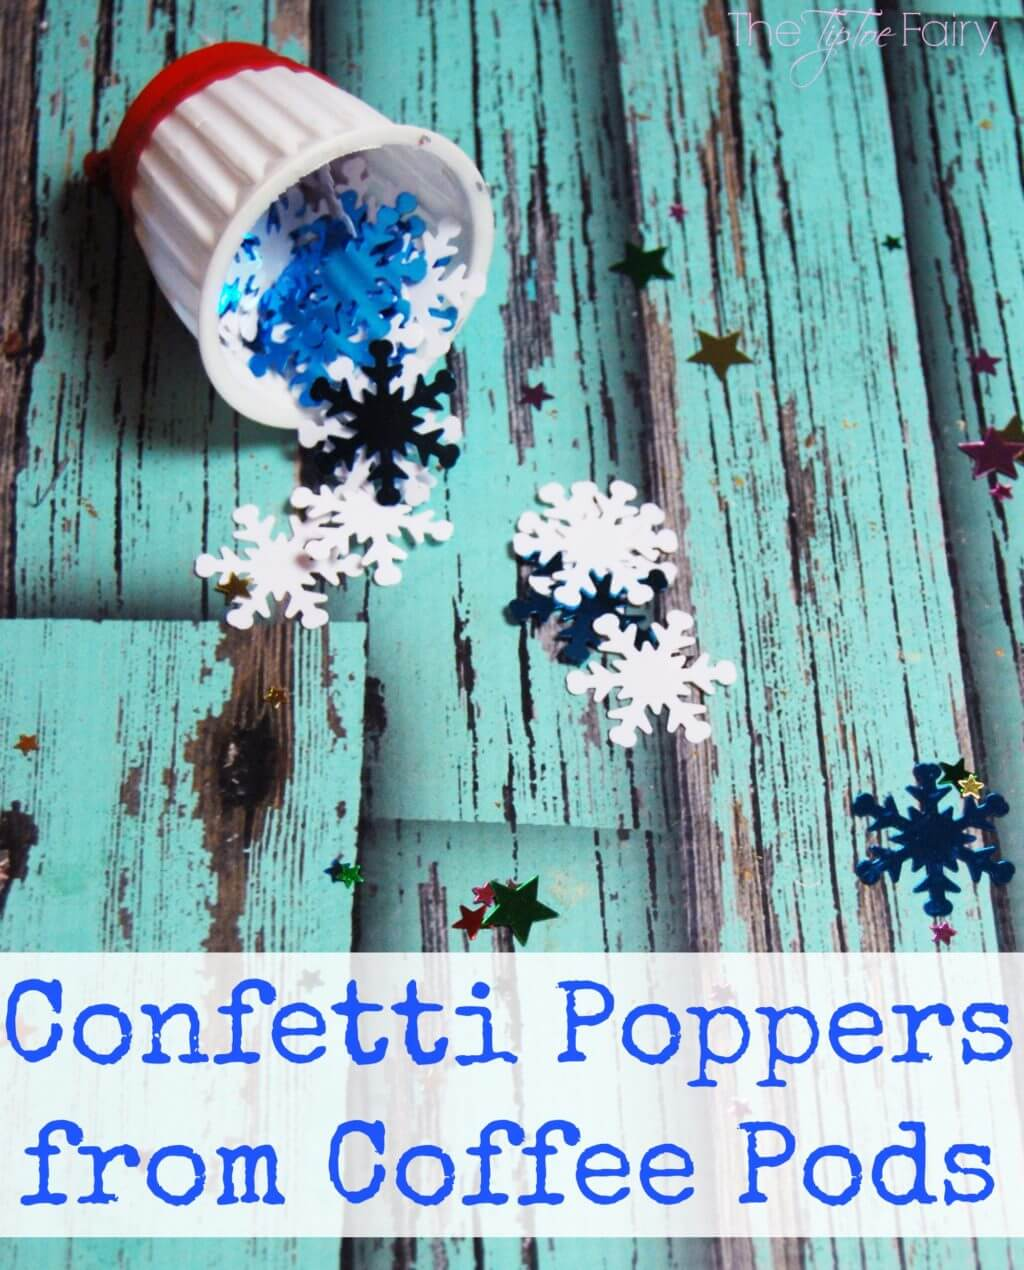 Make Confetti Poppers with upcycled Coffee Pods - an easy tutorial. Great for little hands of preschoolers for New Year's Eve! | The TipToe Fairy #McCafeMyWay #ad #tutorial